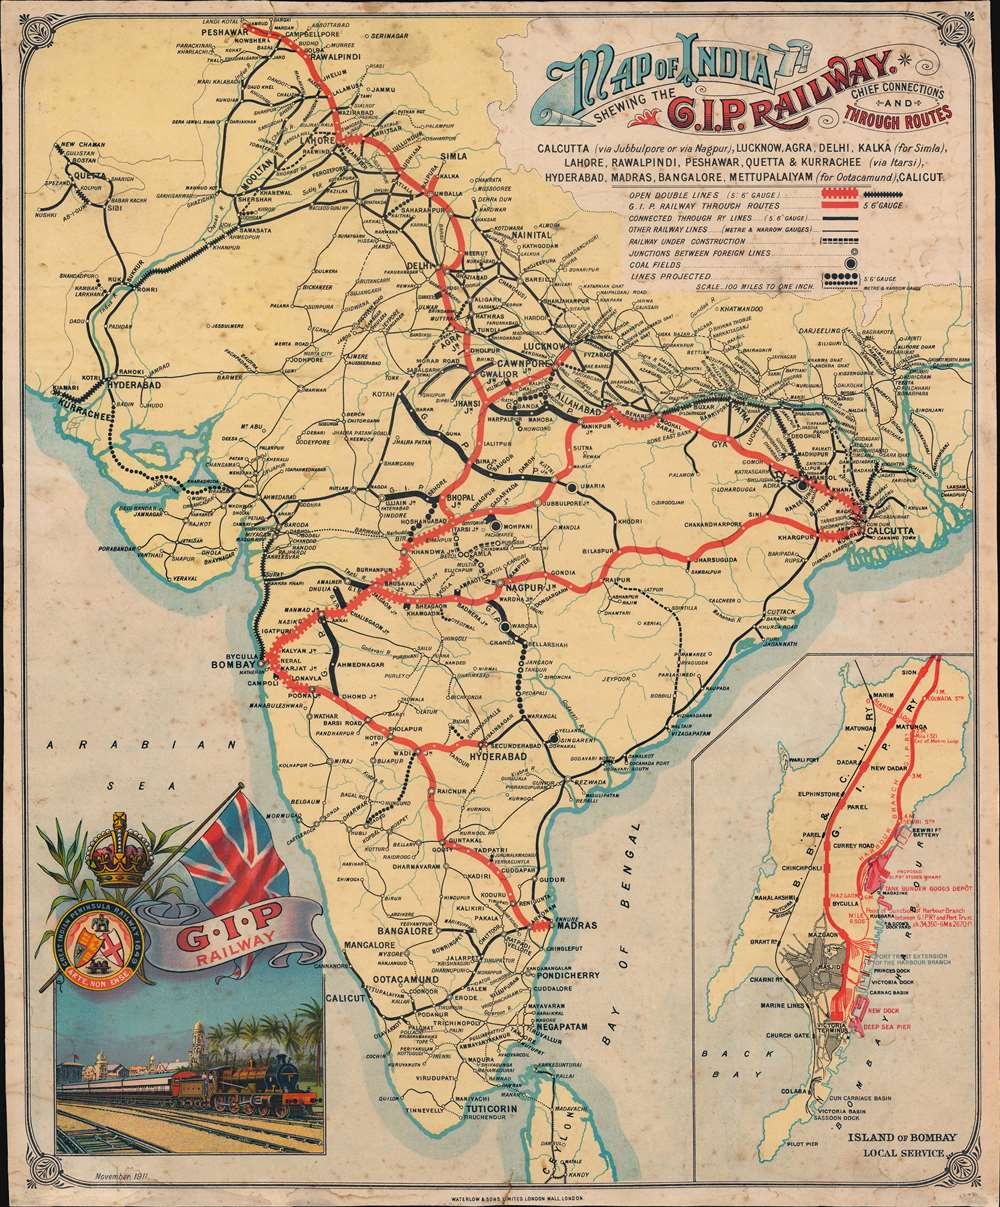 Map of India Shewing the G.I.P. Railway. Chief Connections and Through Routes. - Main View